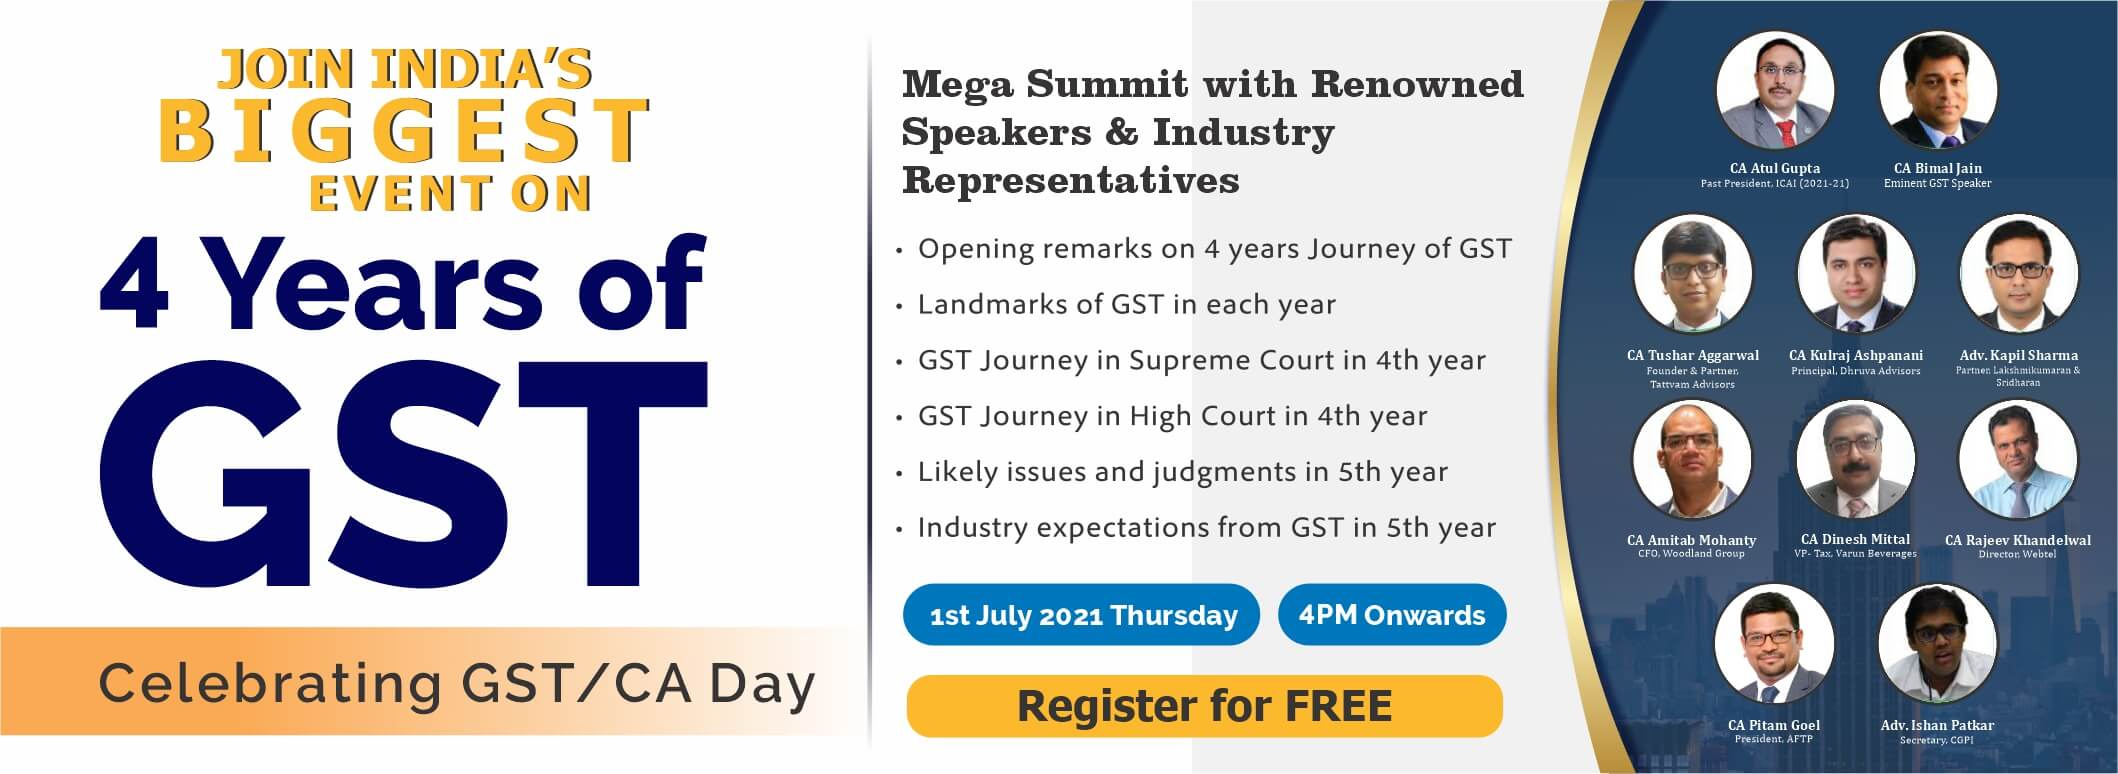 Join India's Biggest Event on 4years of GST and celebrate GST Day and CA Day